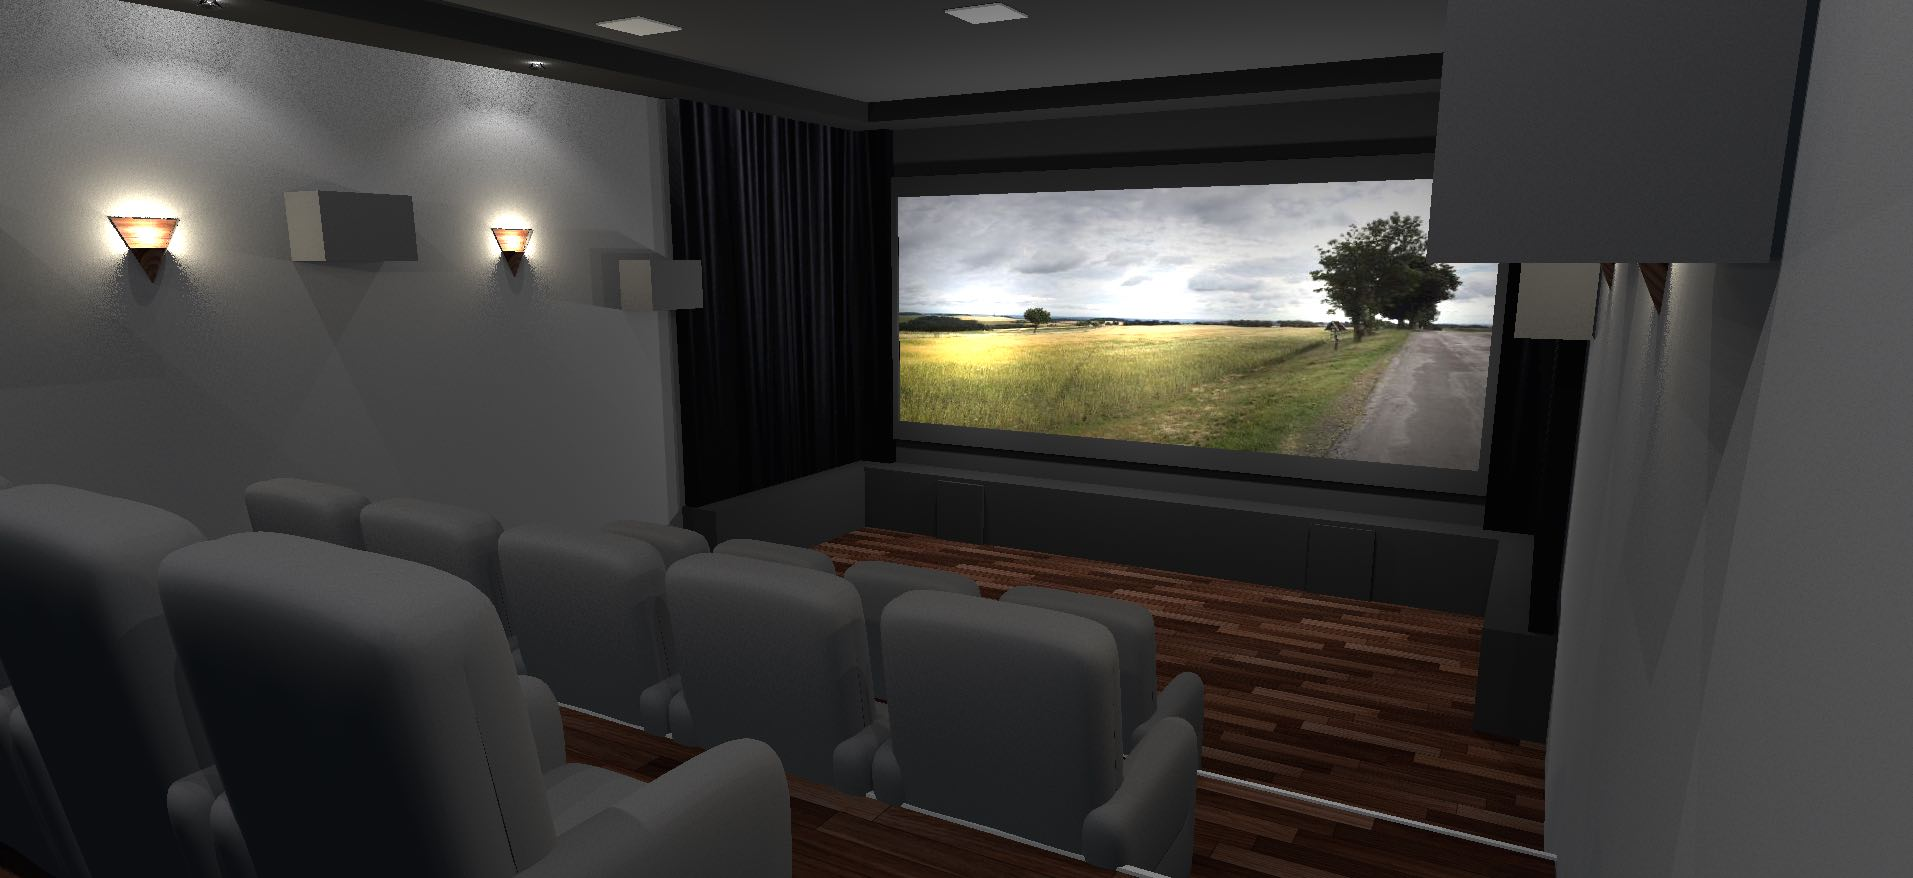 HiFi Forum Service - 3D-Visualisierung